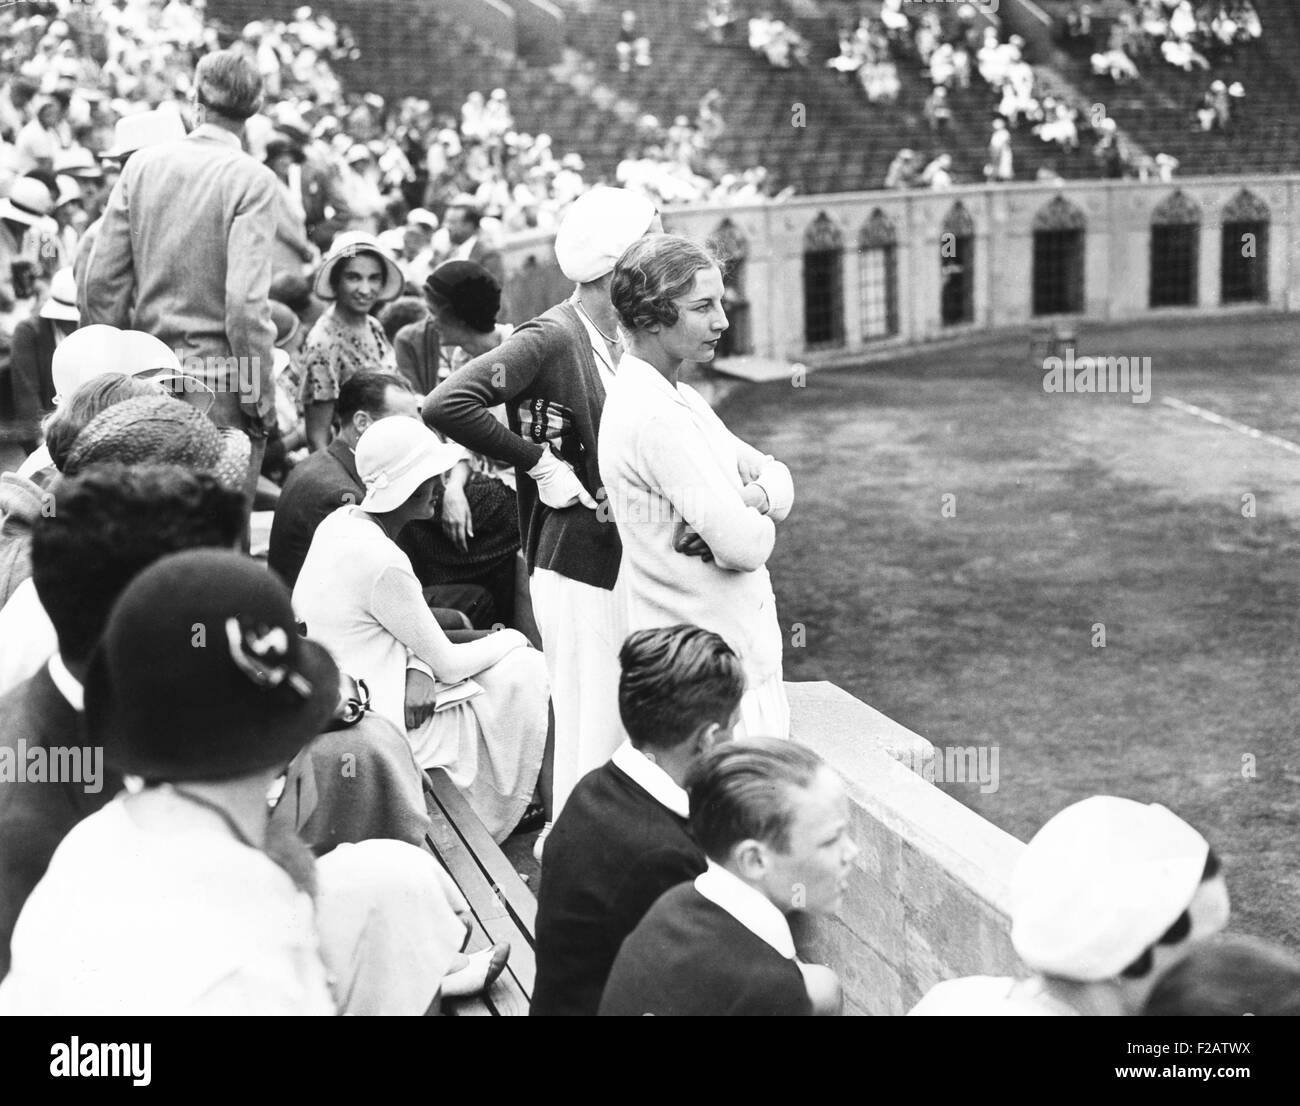 Helen Wills Moody watching tennis match at Forest Hills Long